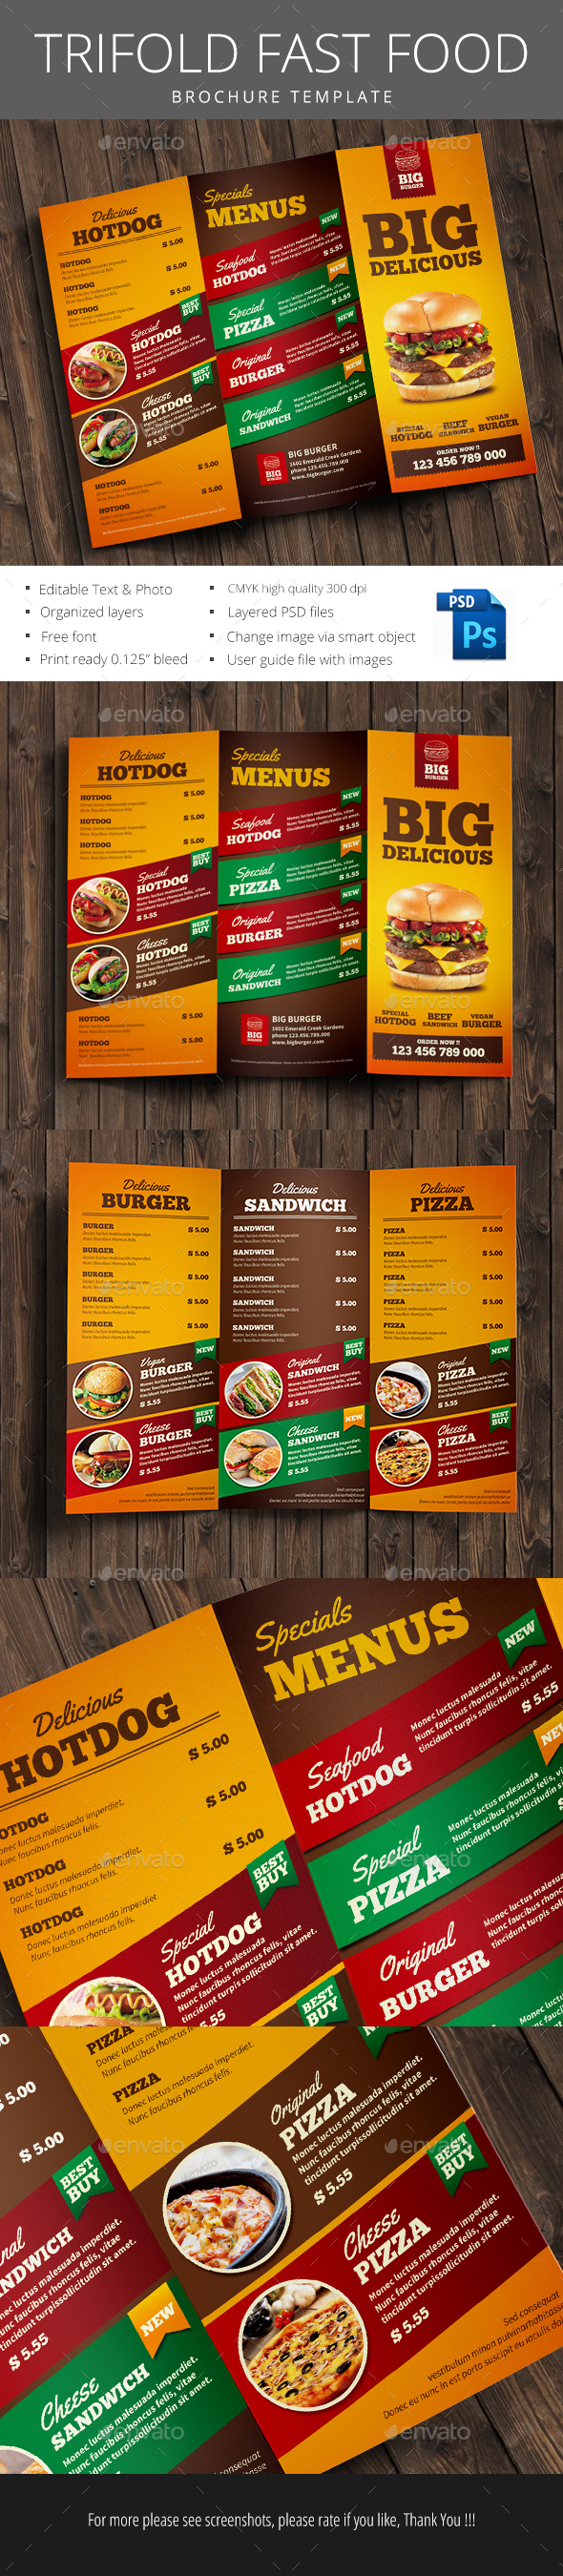 Fast Food Trifold Brochure - Brochures Print Templates